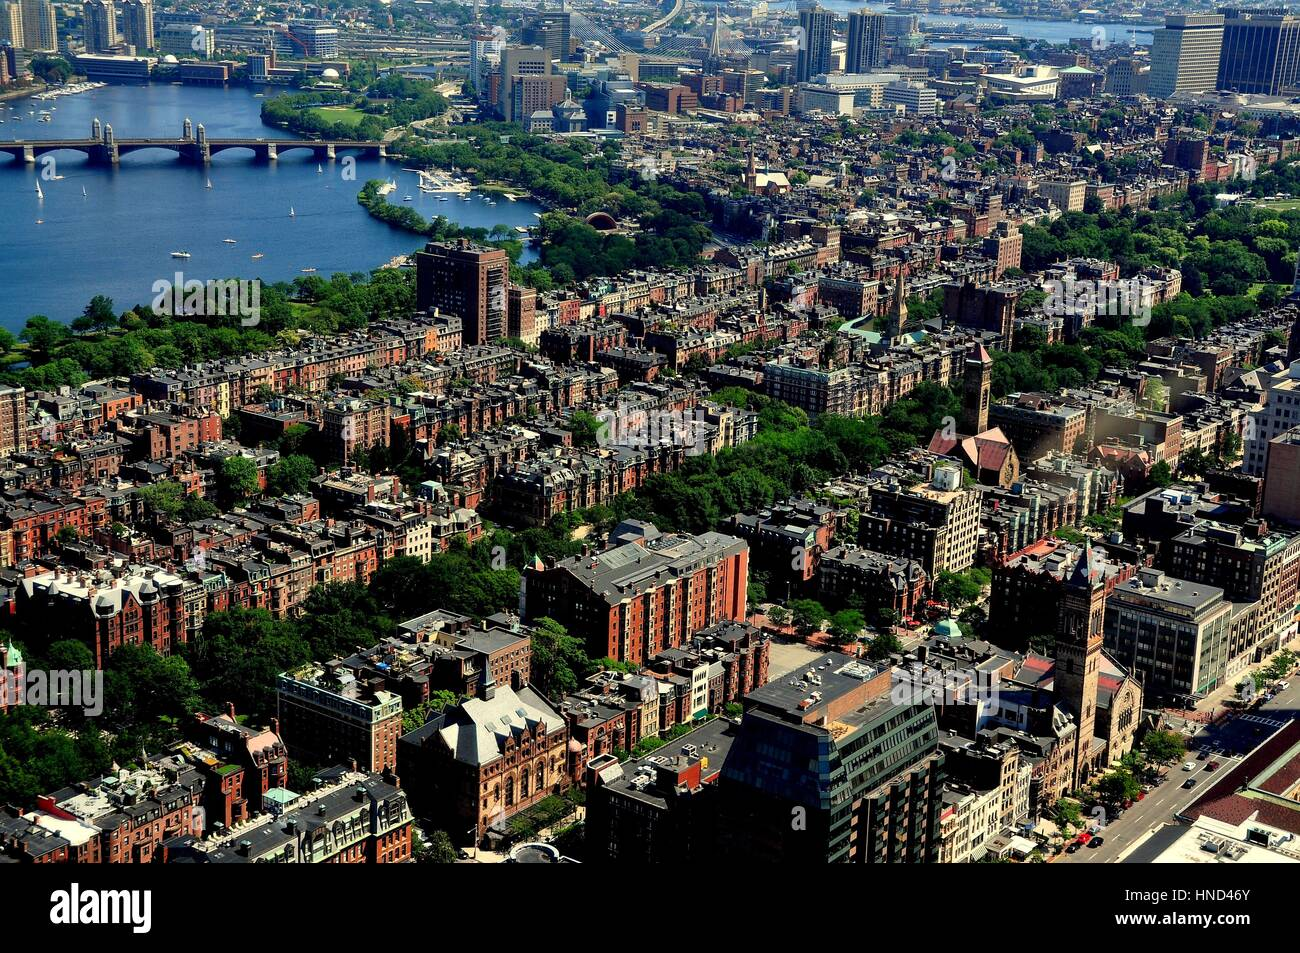 Boston, Massachusetts - July 13, 2013:  View over 19th century Back Bay and Beacon Hill neighbourhoods with the - Stock Image